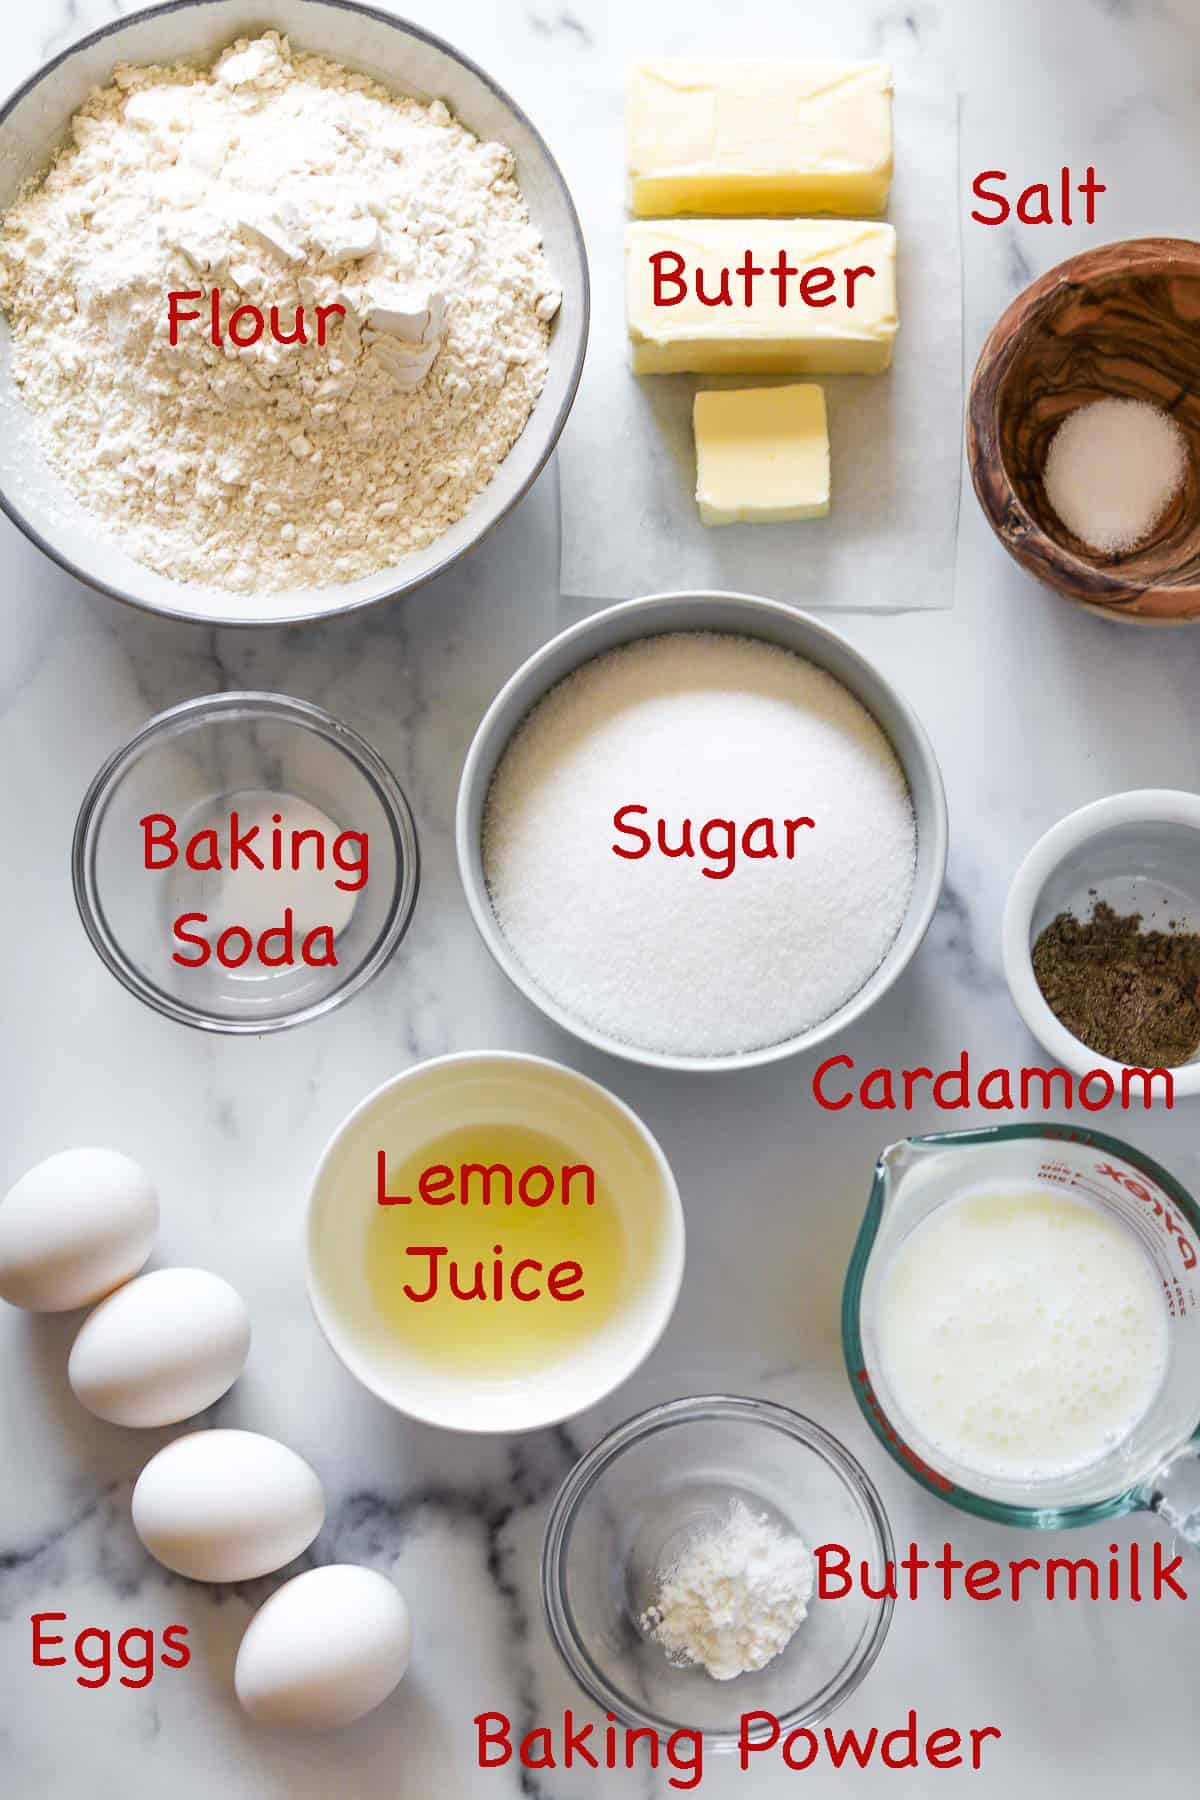 Labeled ingredients for Cardamom Cake.